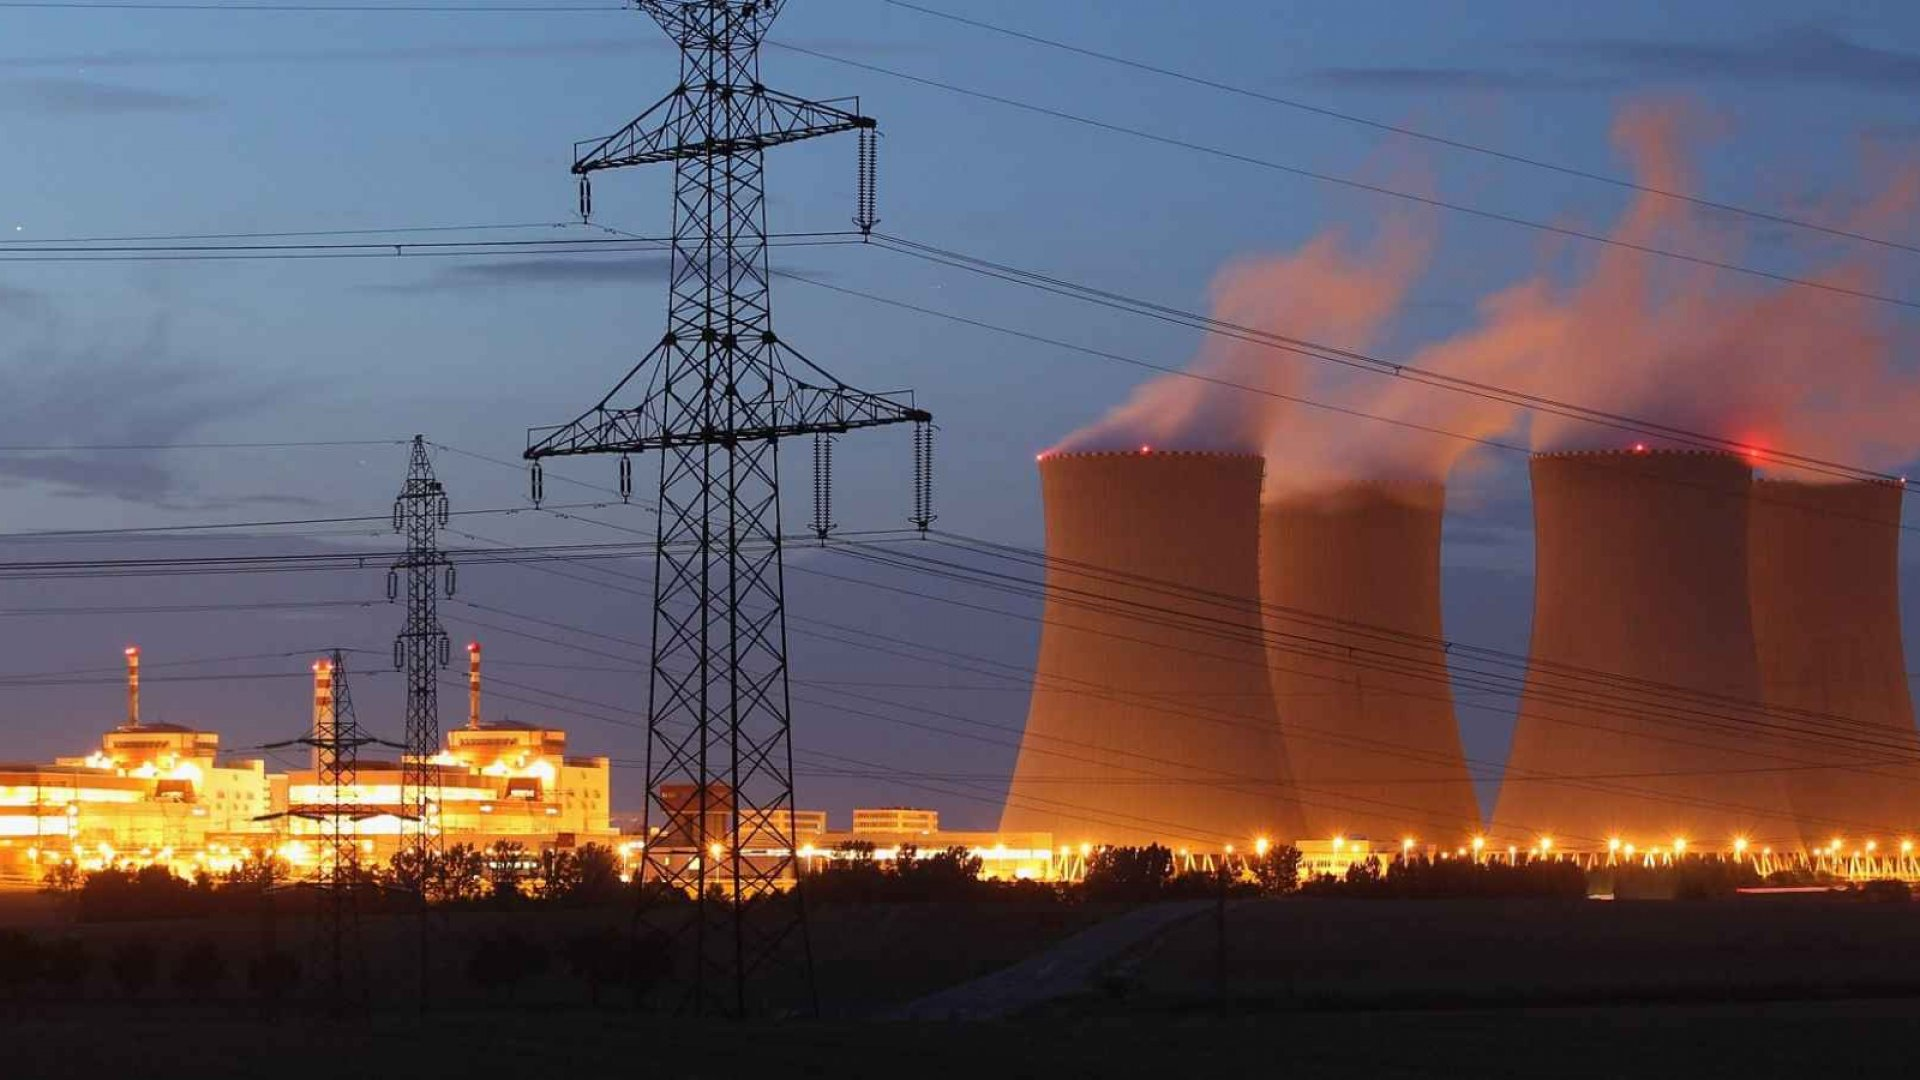 Power plants could be targeted by hackers this year, cyber security researchers warn